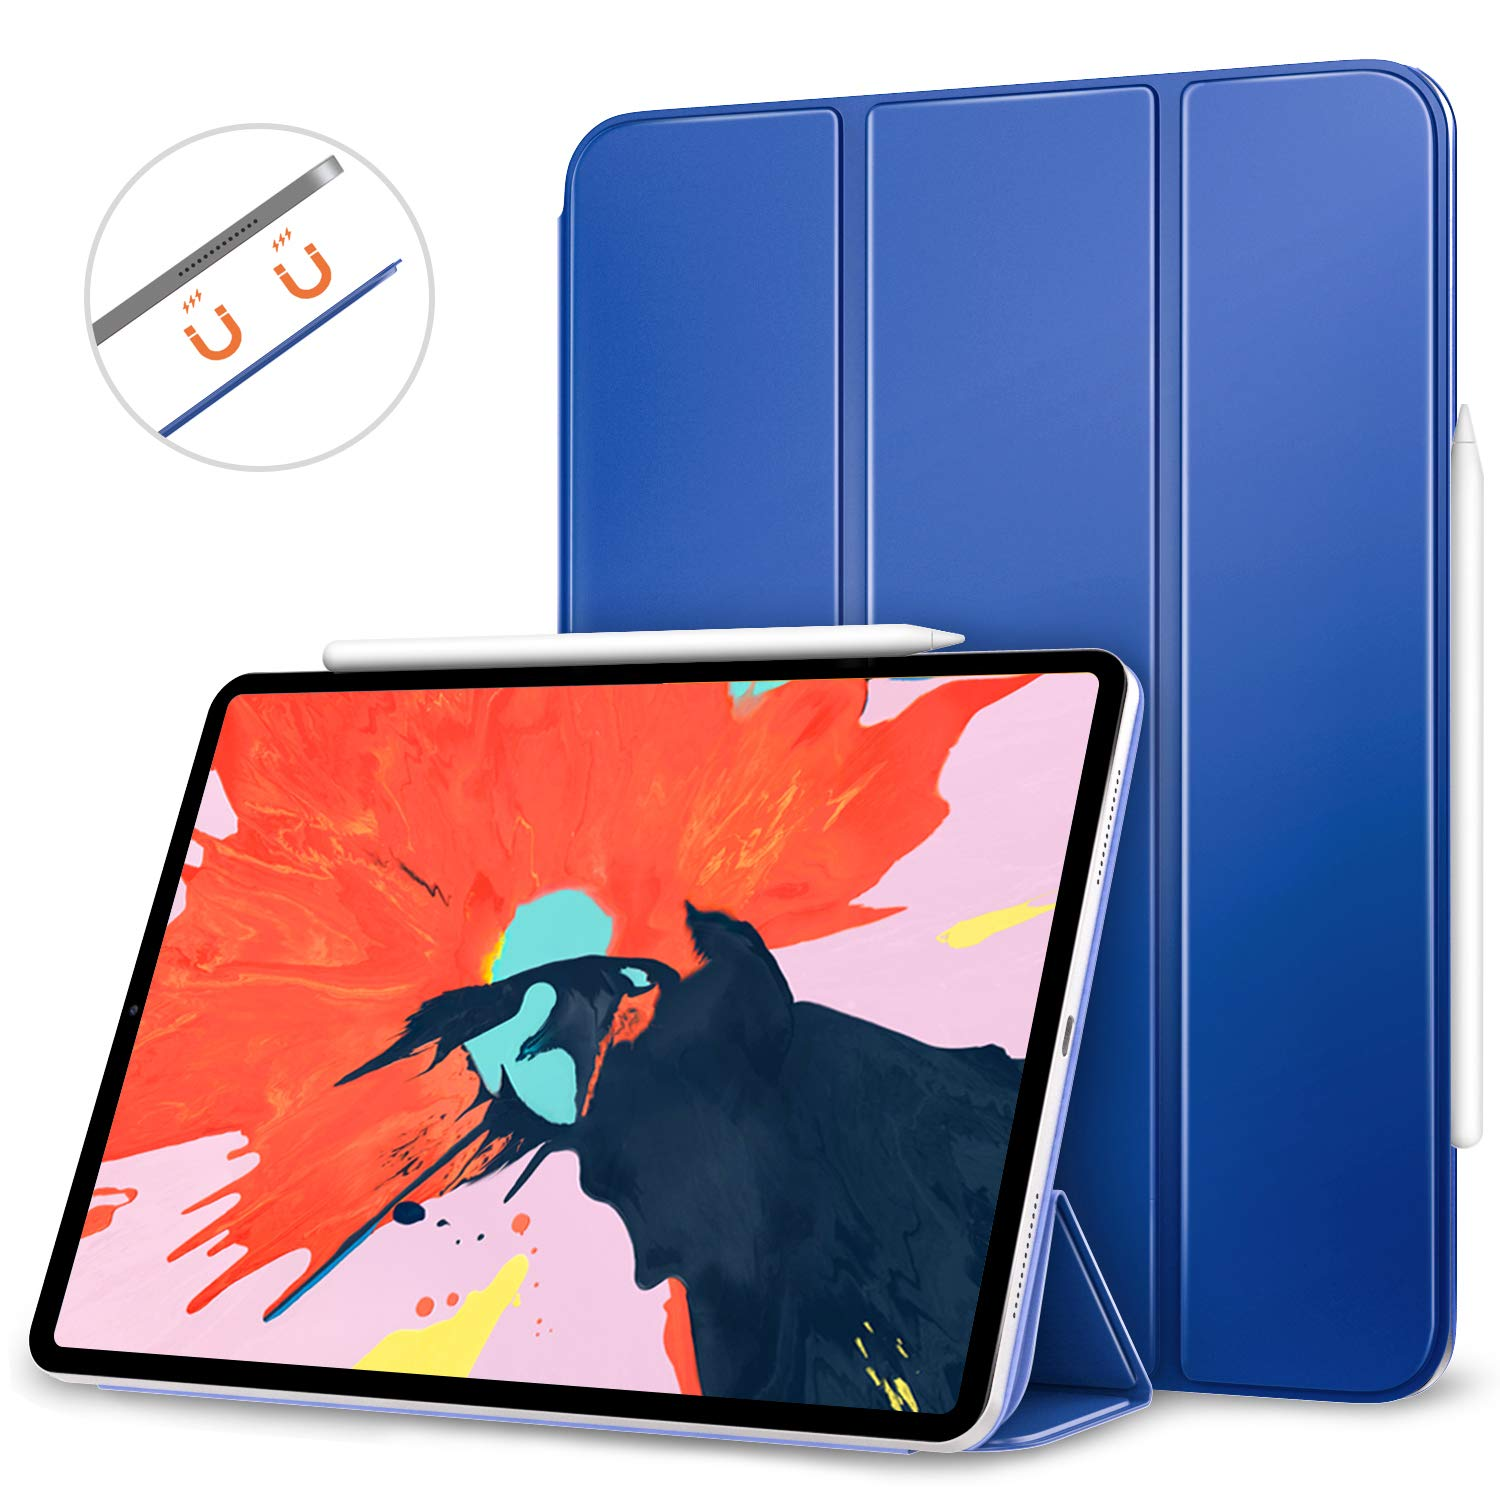 MoKo Smart Folio Case Fit iPad Pro 12.9' 2018 - [Support Magnetically Attach Charge/Pair] Slim Lightweight Smart Shell Stand Cover, Strong Magnetic Adsorption, Auto Wake/Sleep - Black